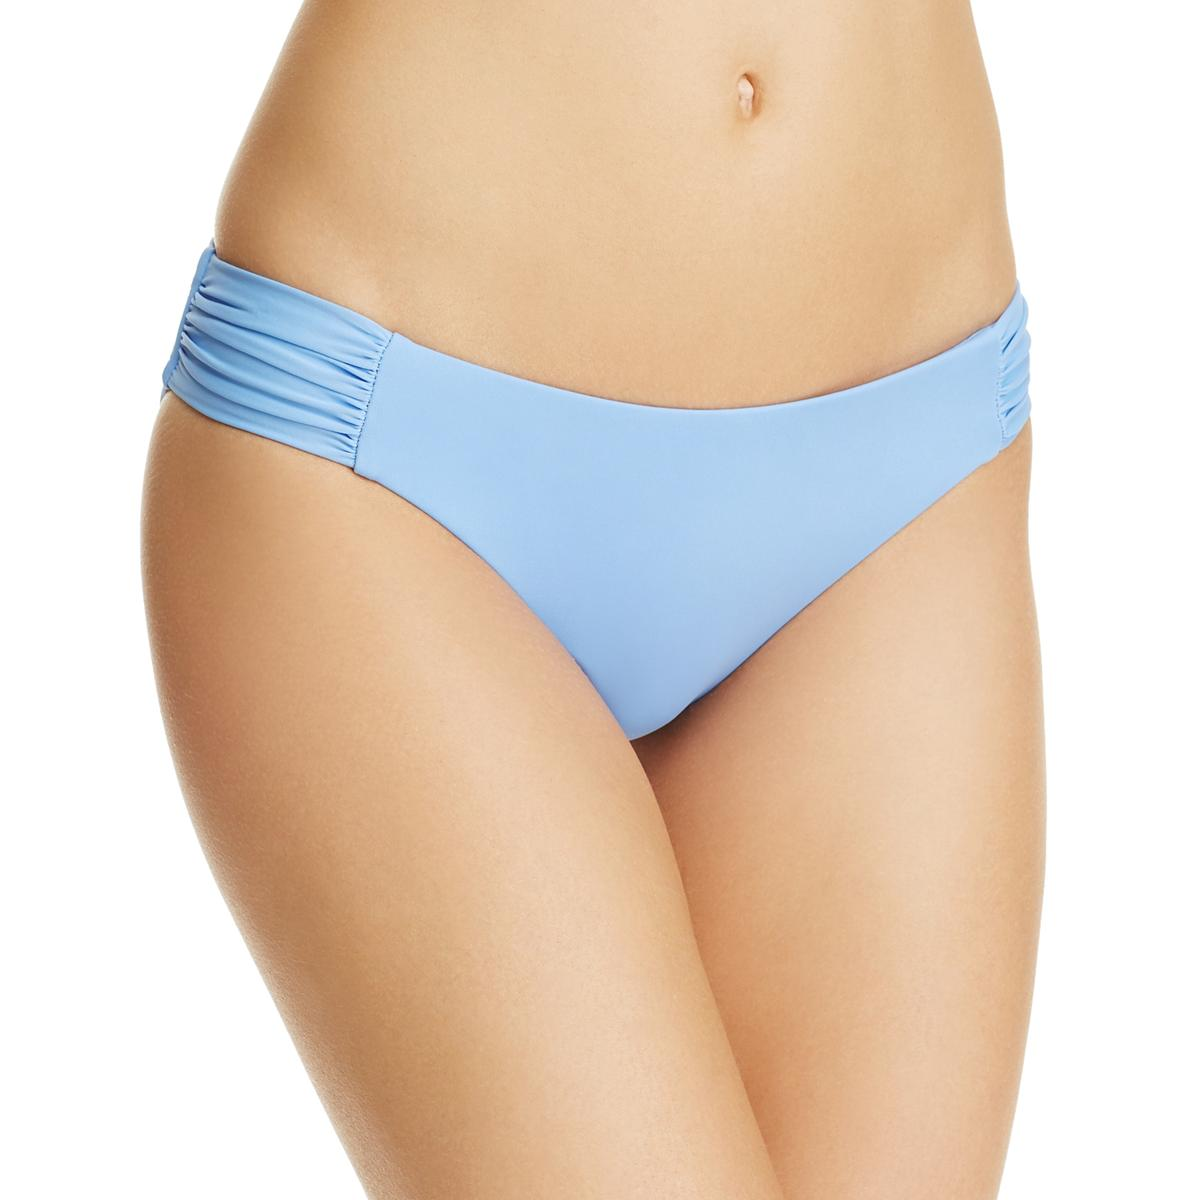 93e6b77815 Details about Becca by Rebecca Virtue Womens Blue Hipster Swim Bottom  Separates L BHFO 2030